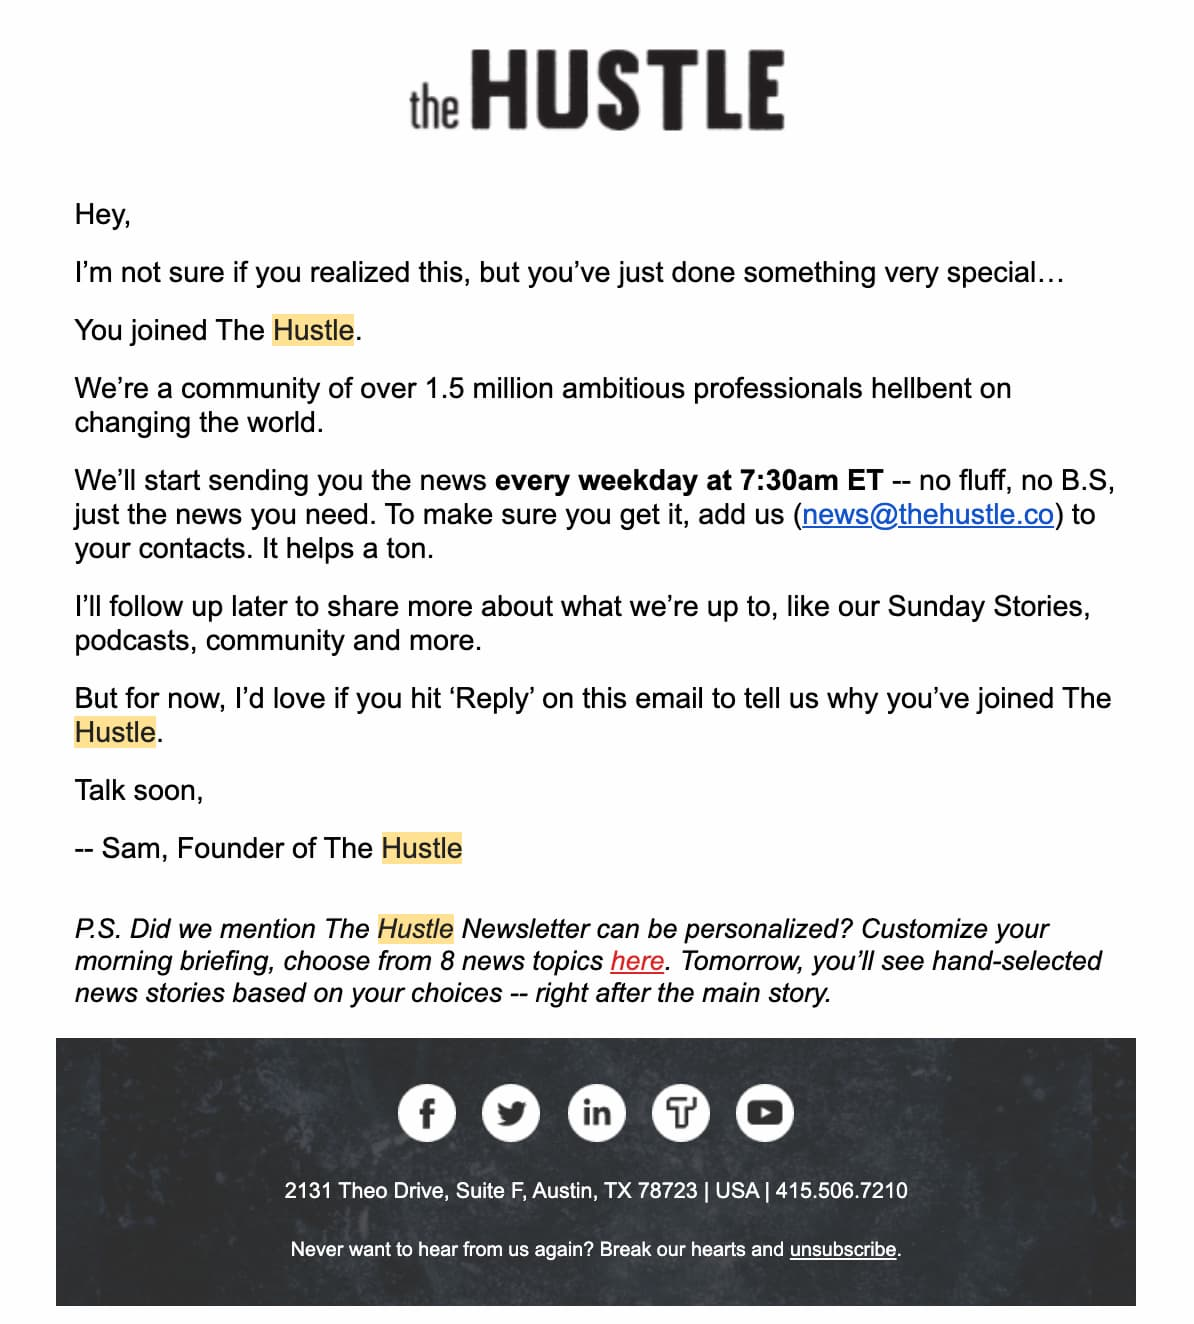 The Hustle welcome email setting the tone and expectations for the future communication.